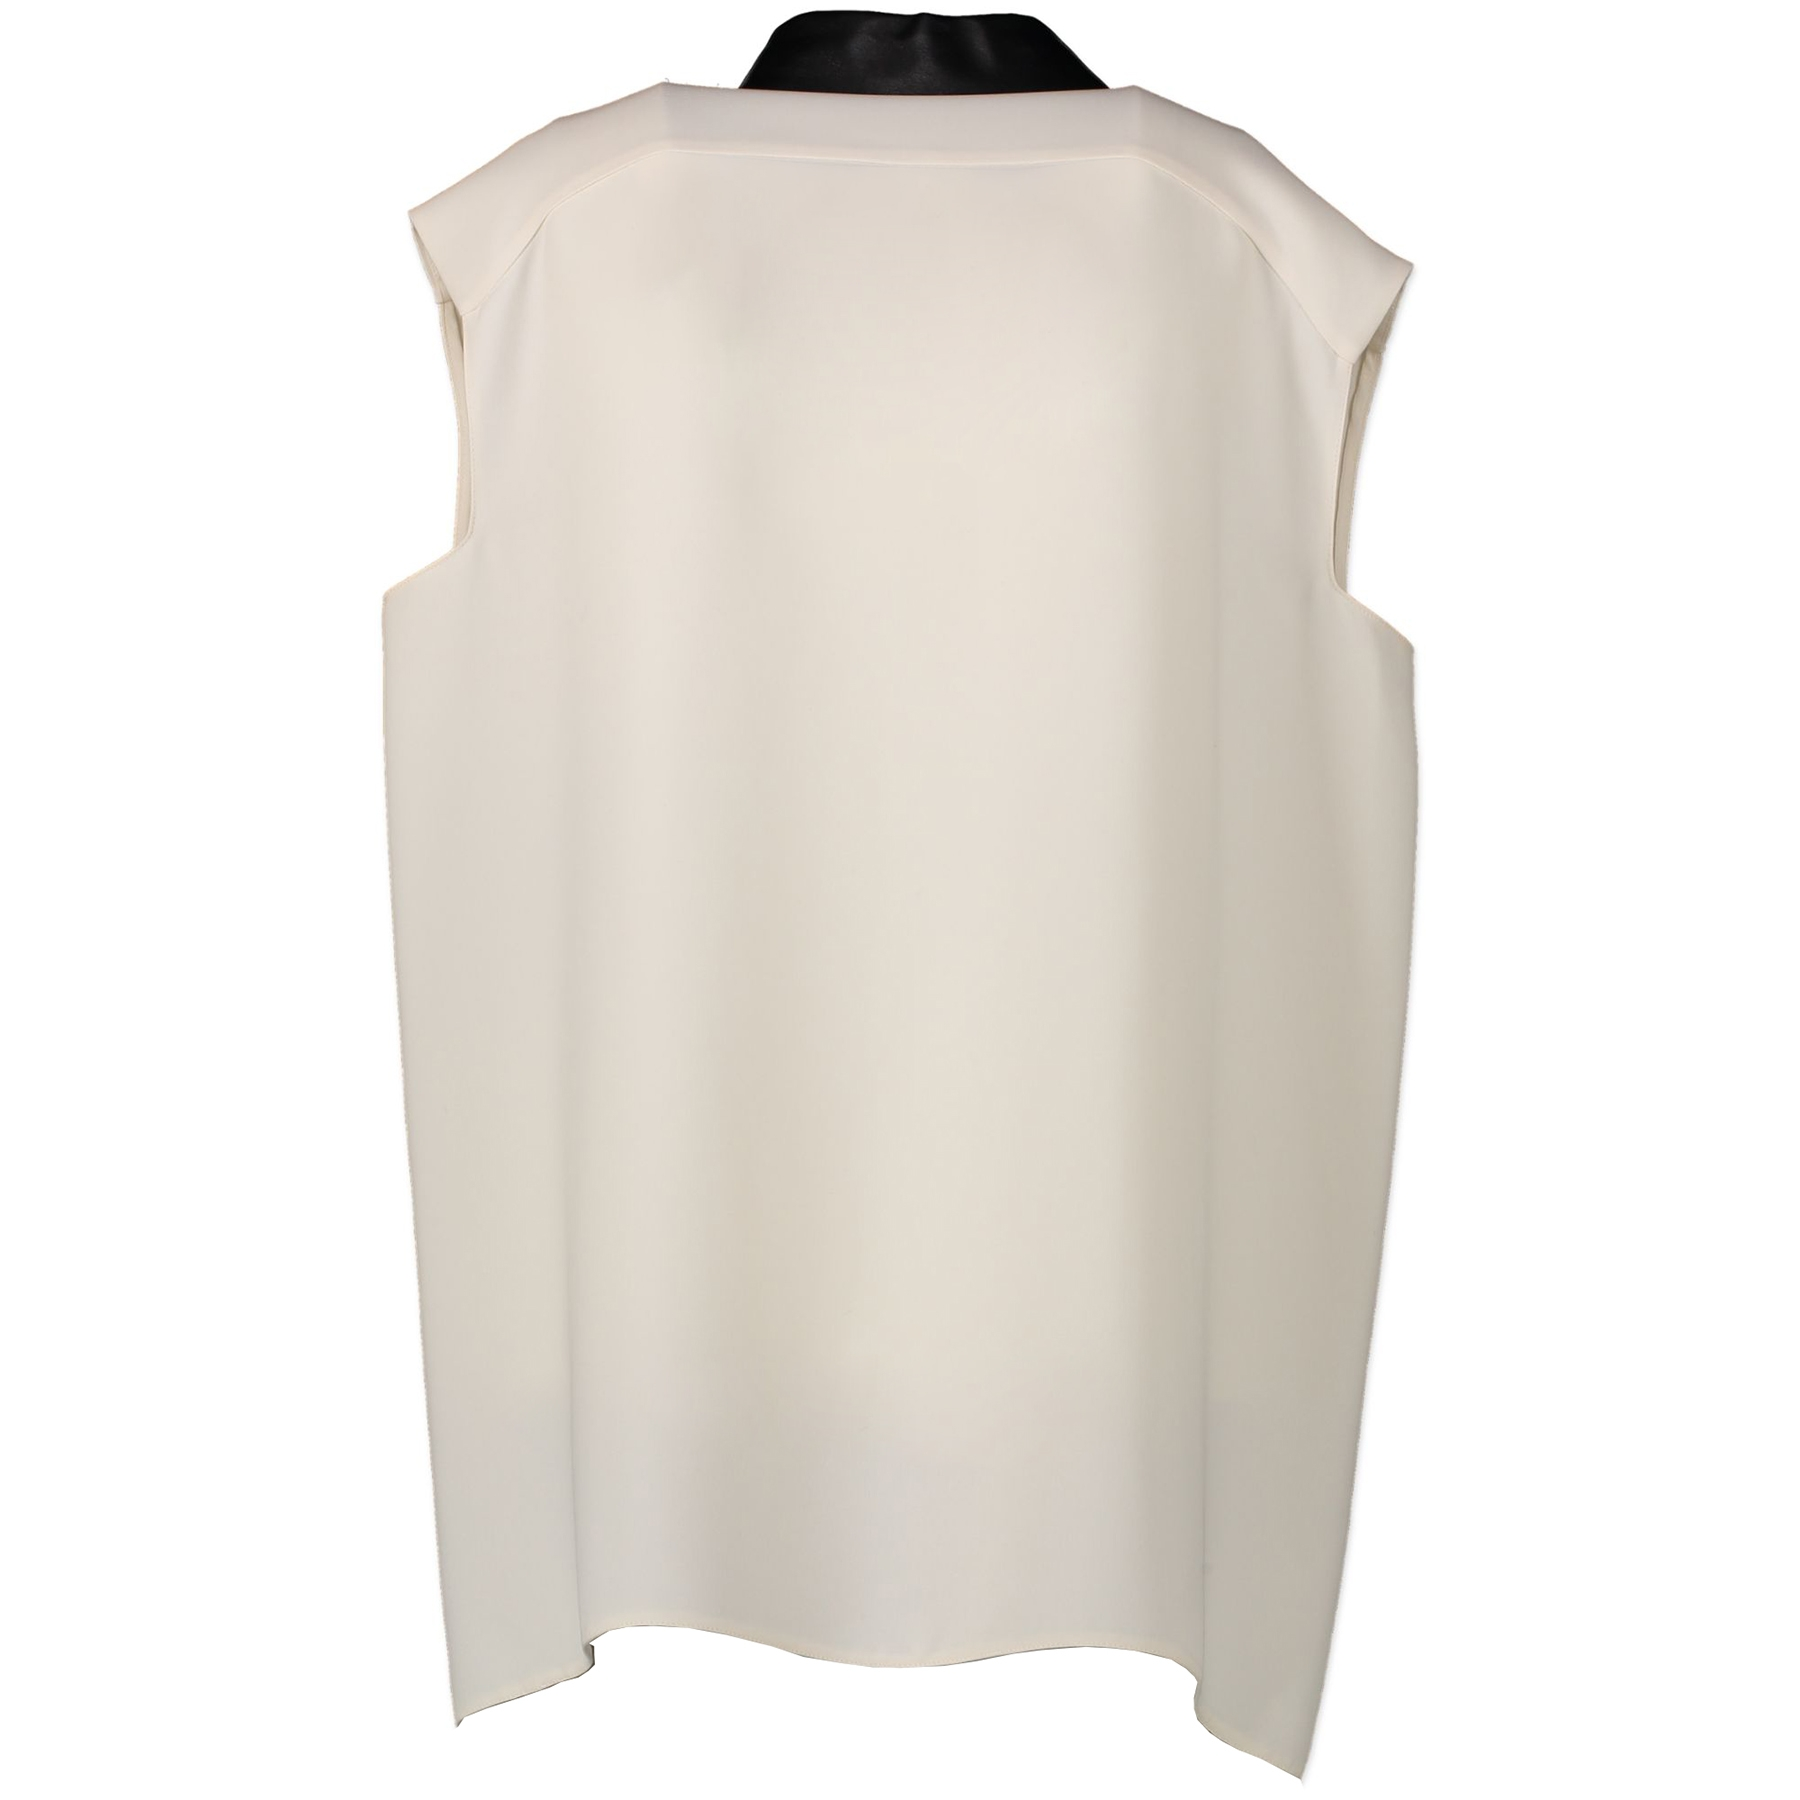 Gucci White Silk Shirt With Leather Collar - 46 IT - aan de beste prijs